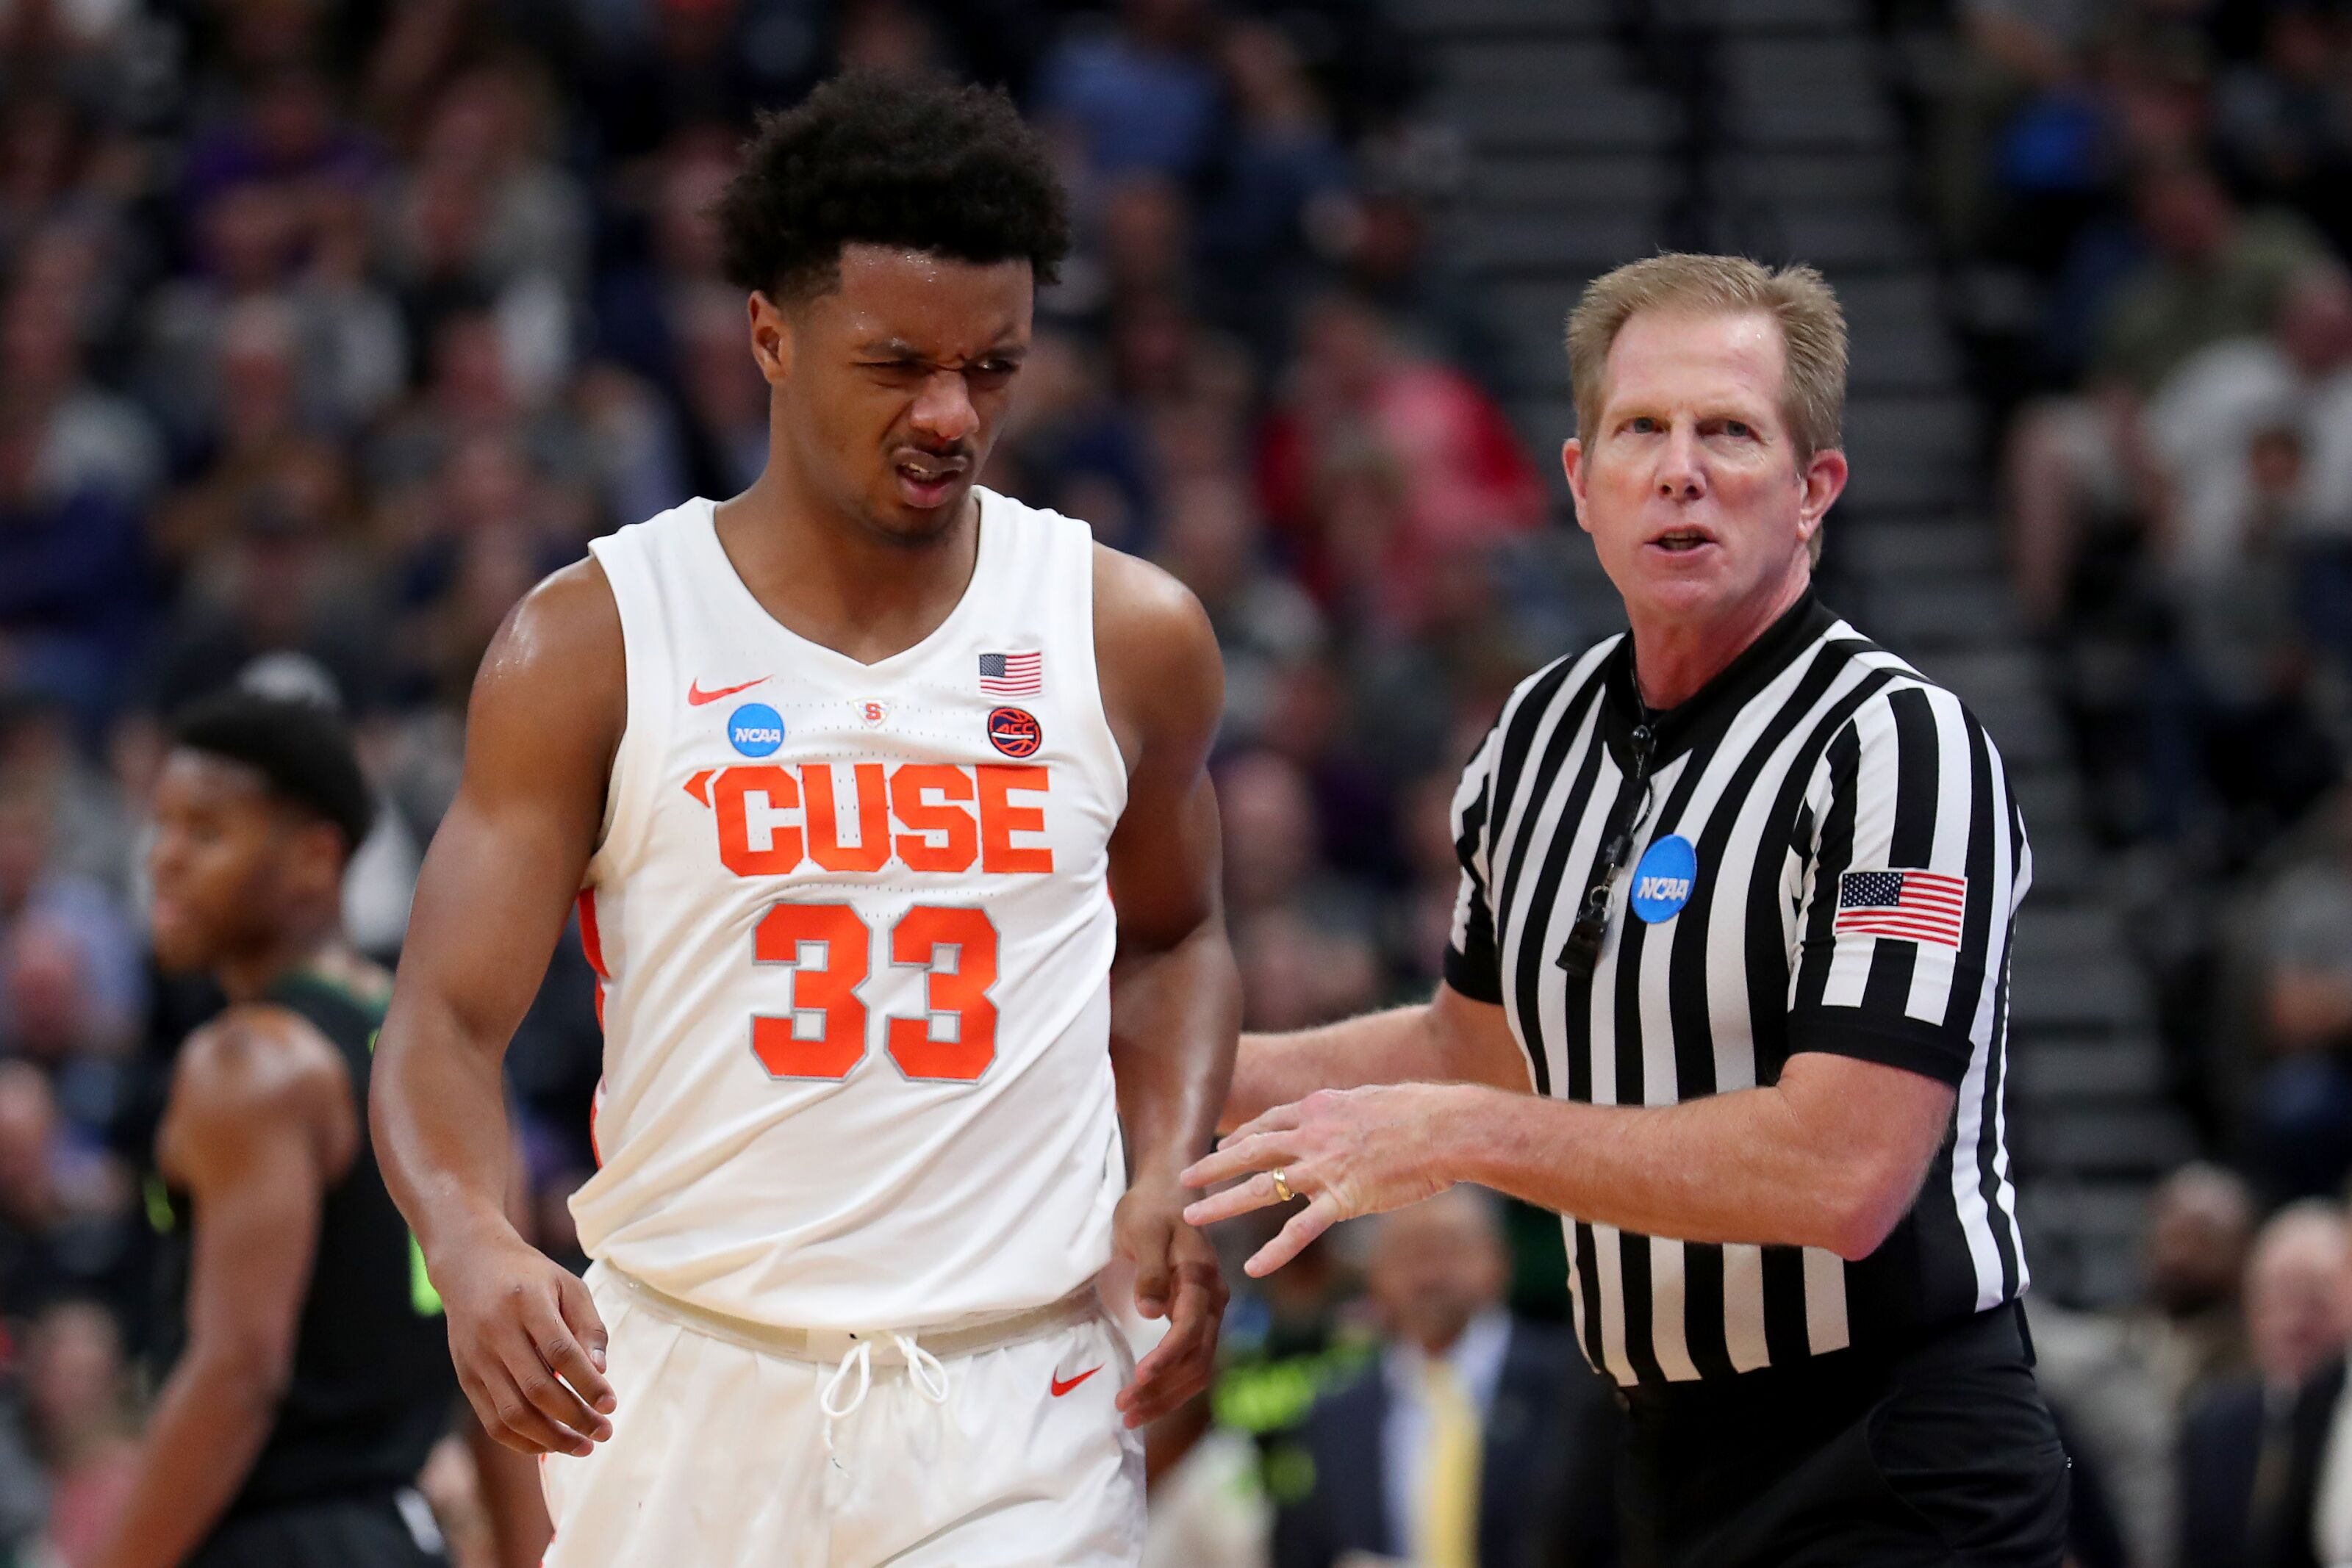 Syracuse Basketball: Top takeaways from the Orange's ACC line-up